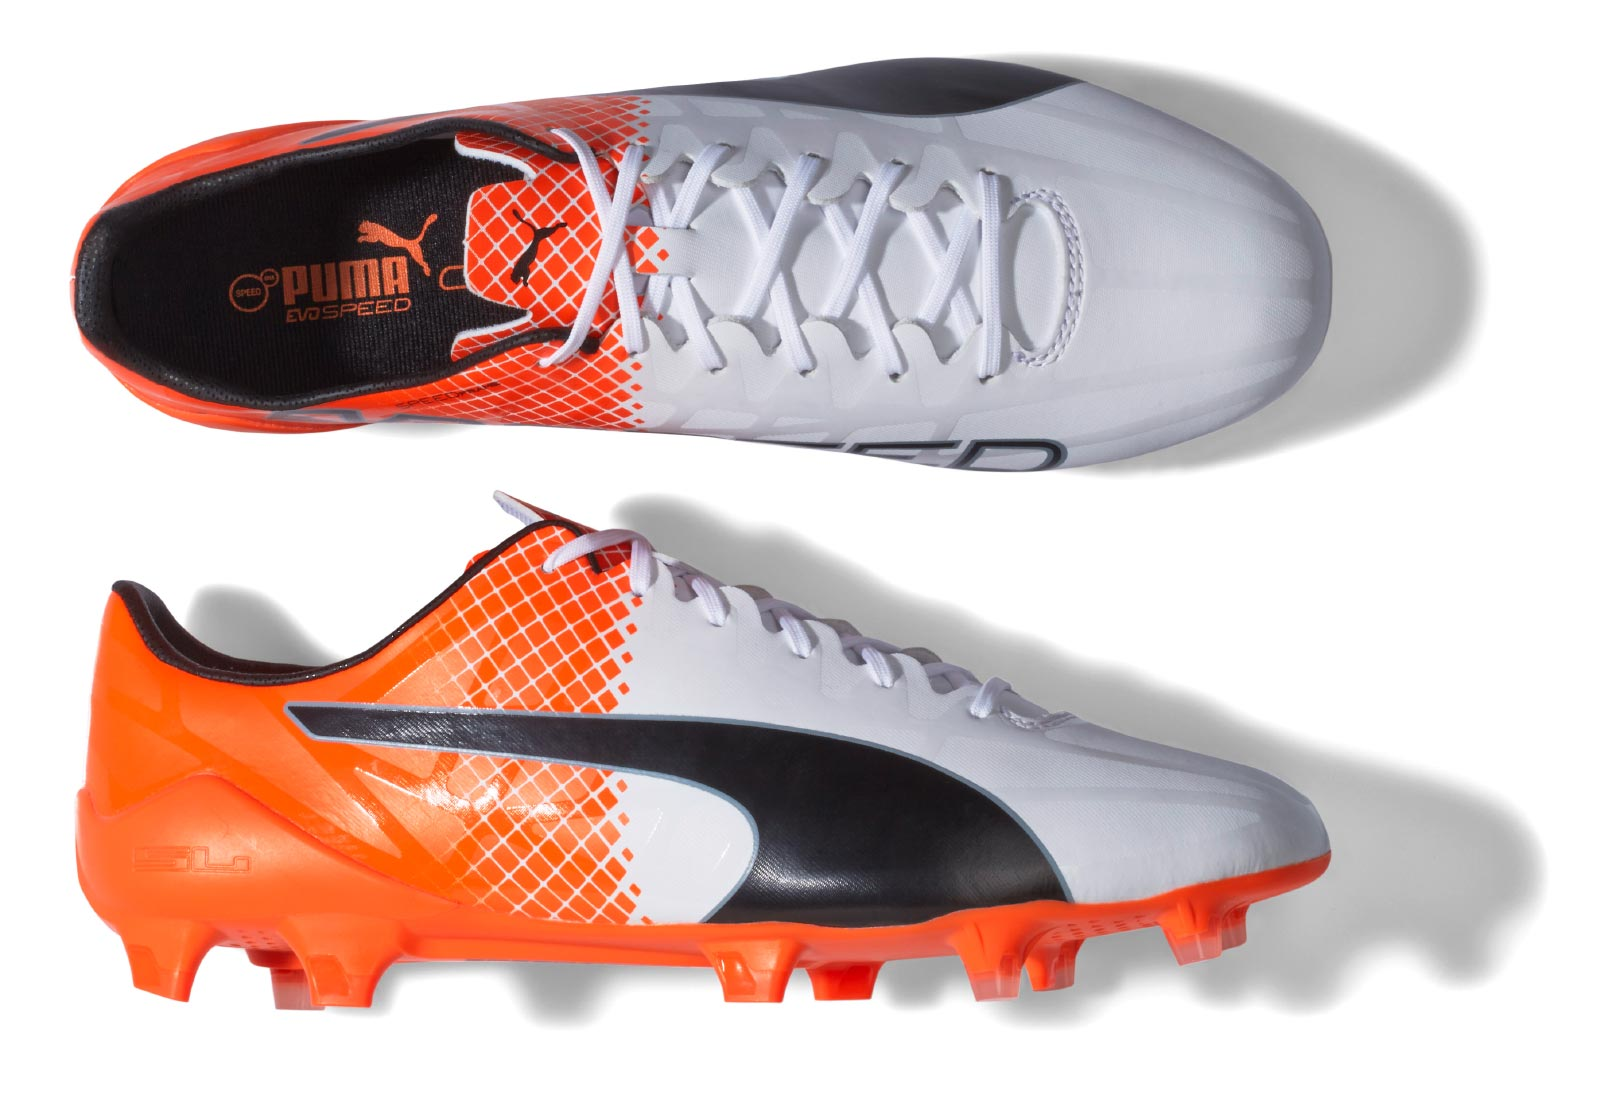 puma evospeed black white orange